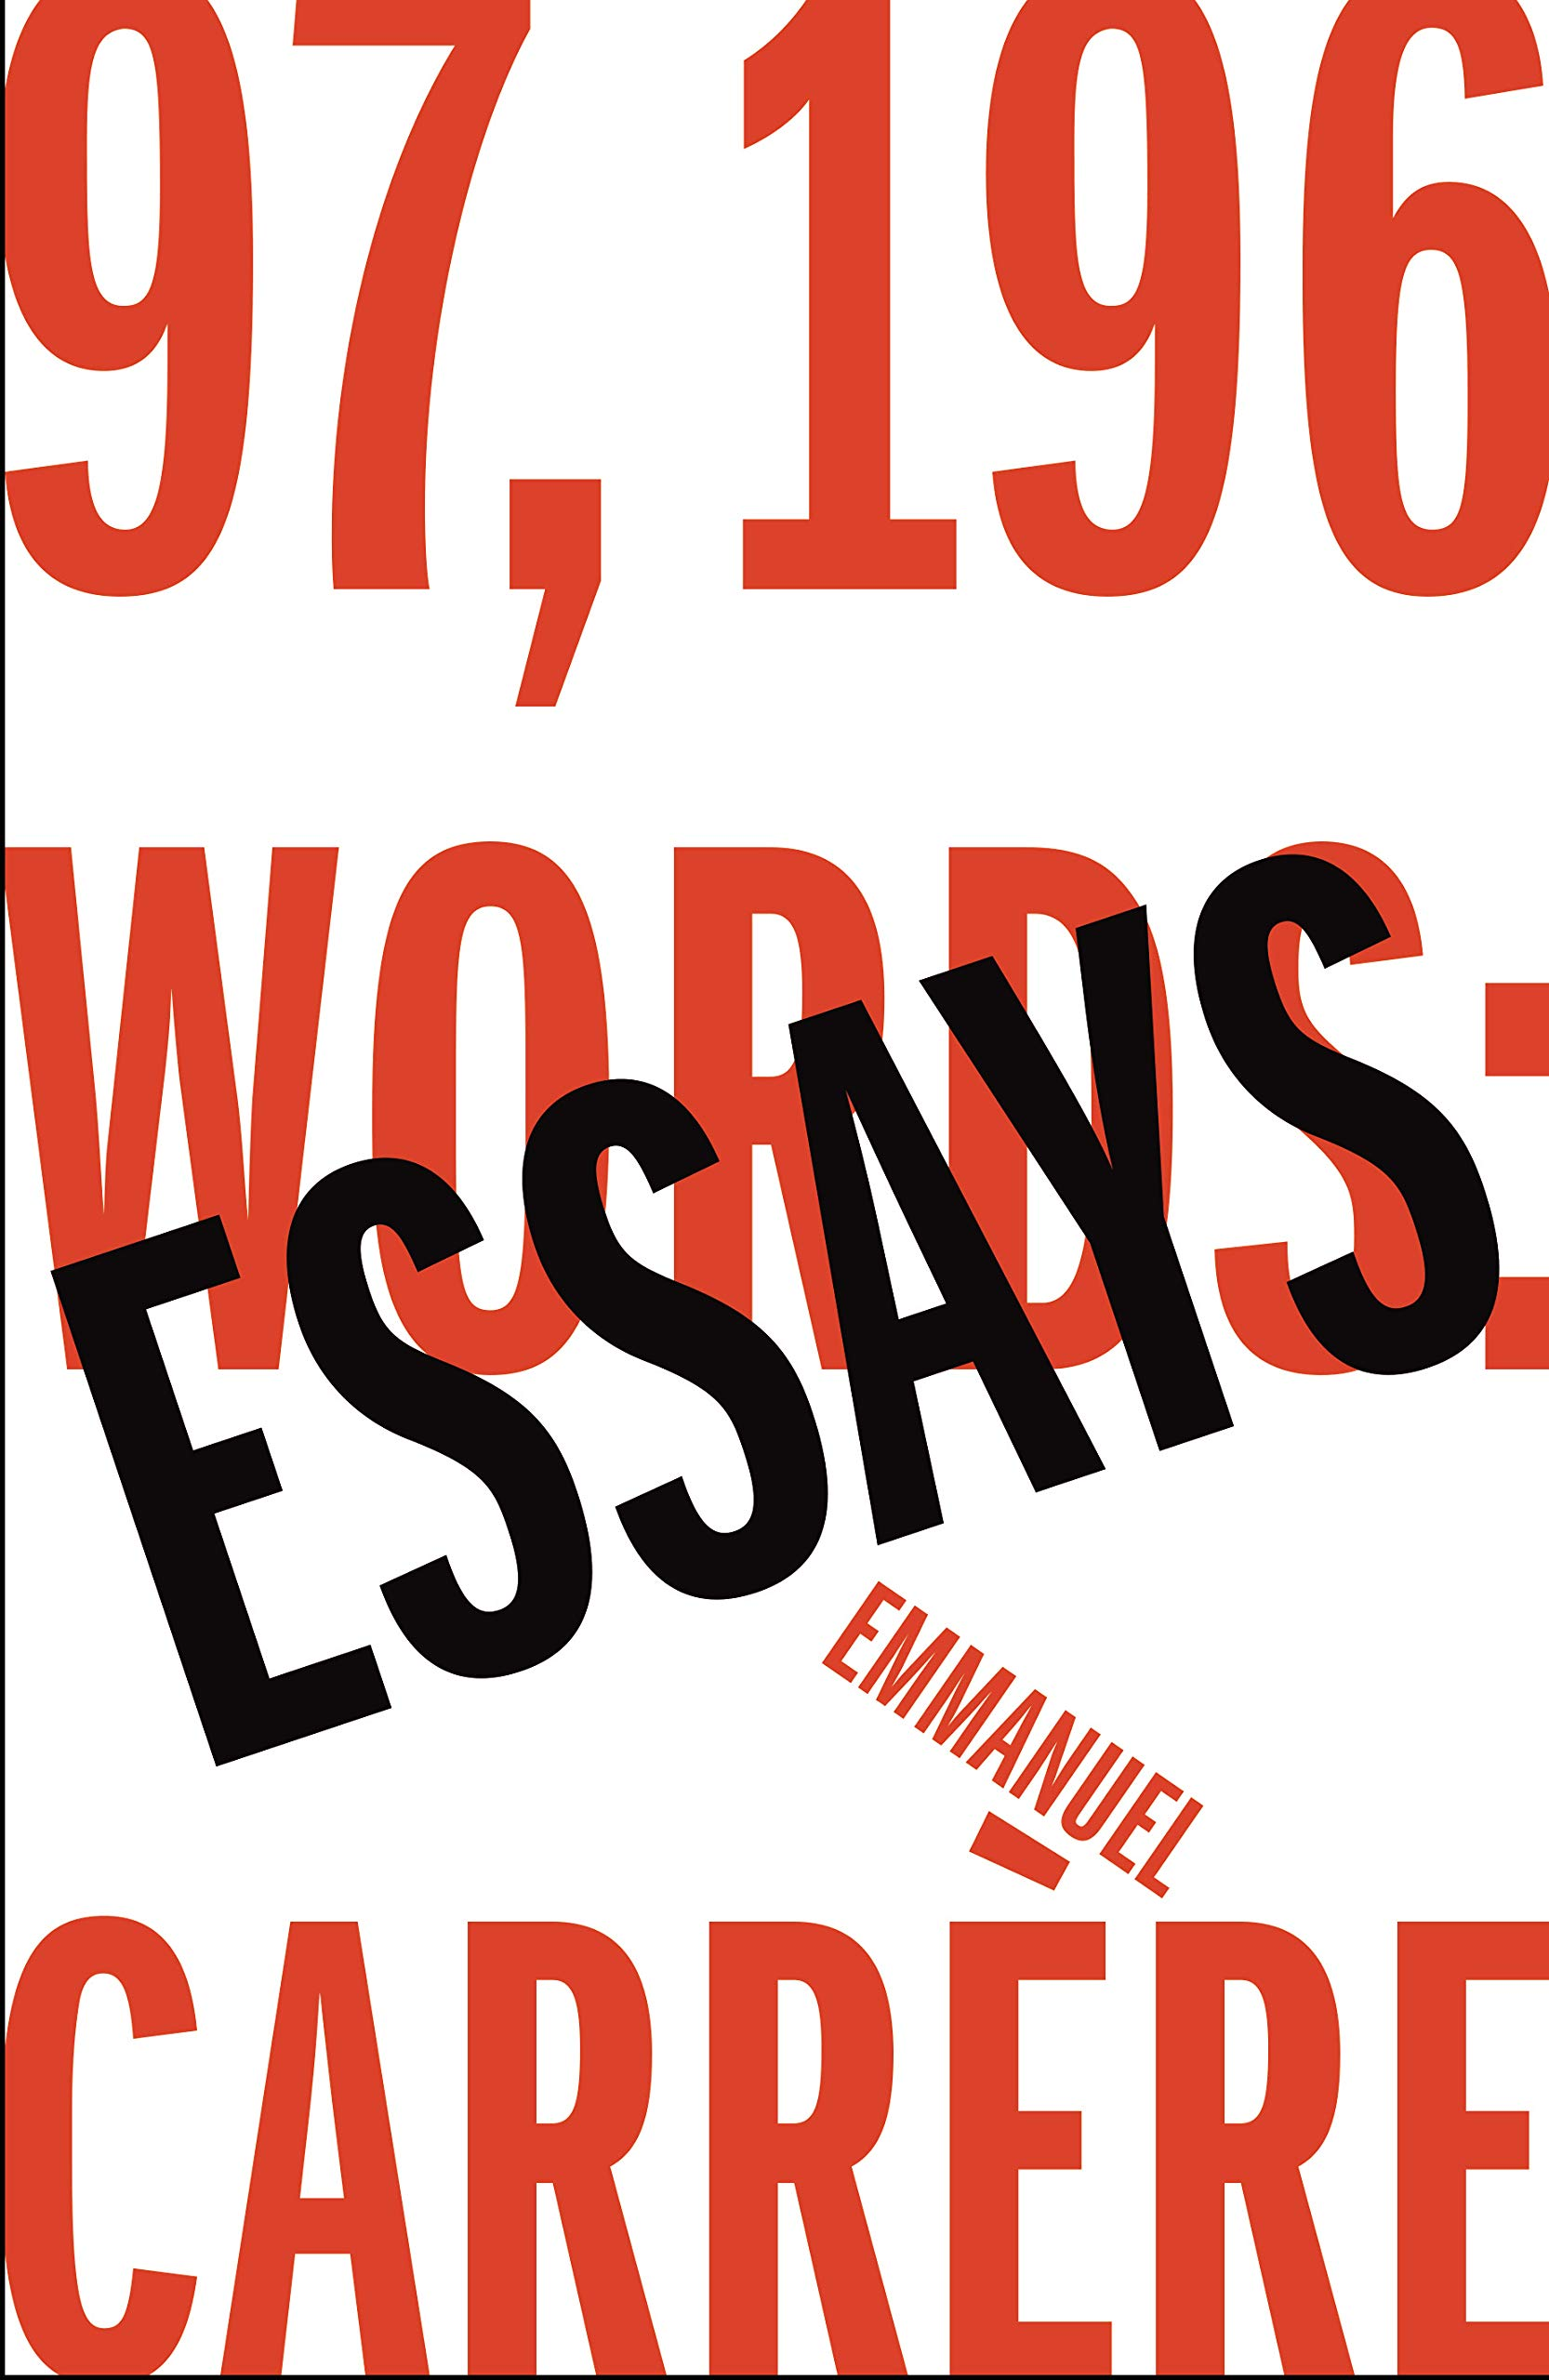 97196 Words  Essays  English Edition